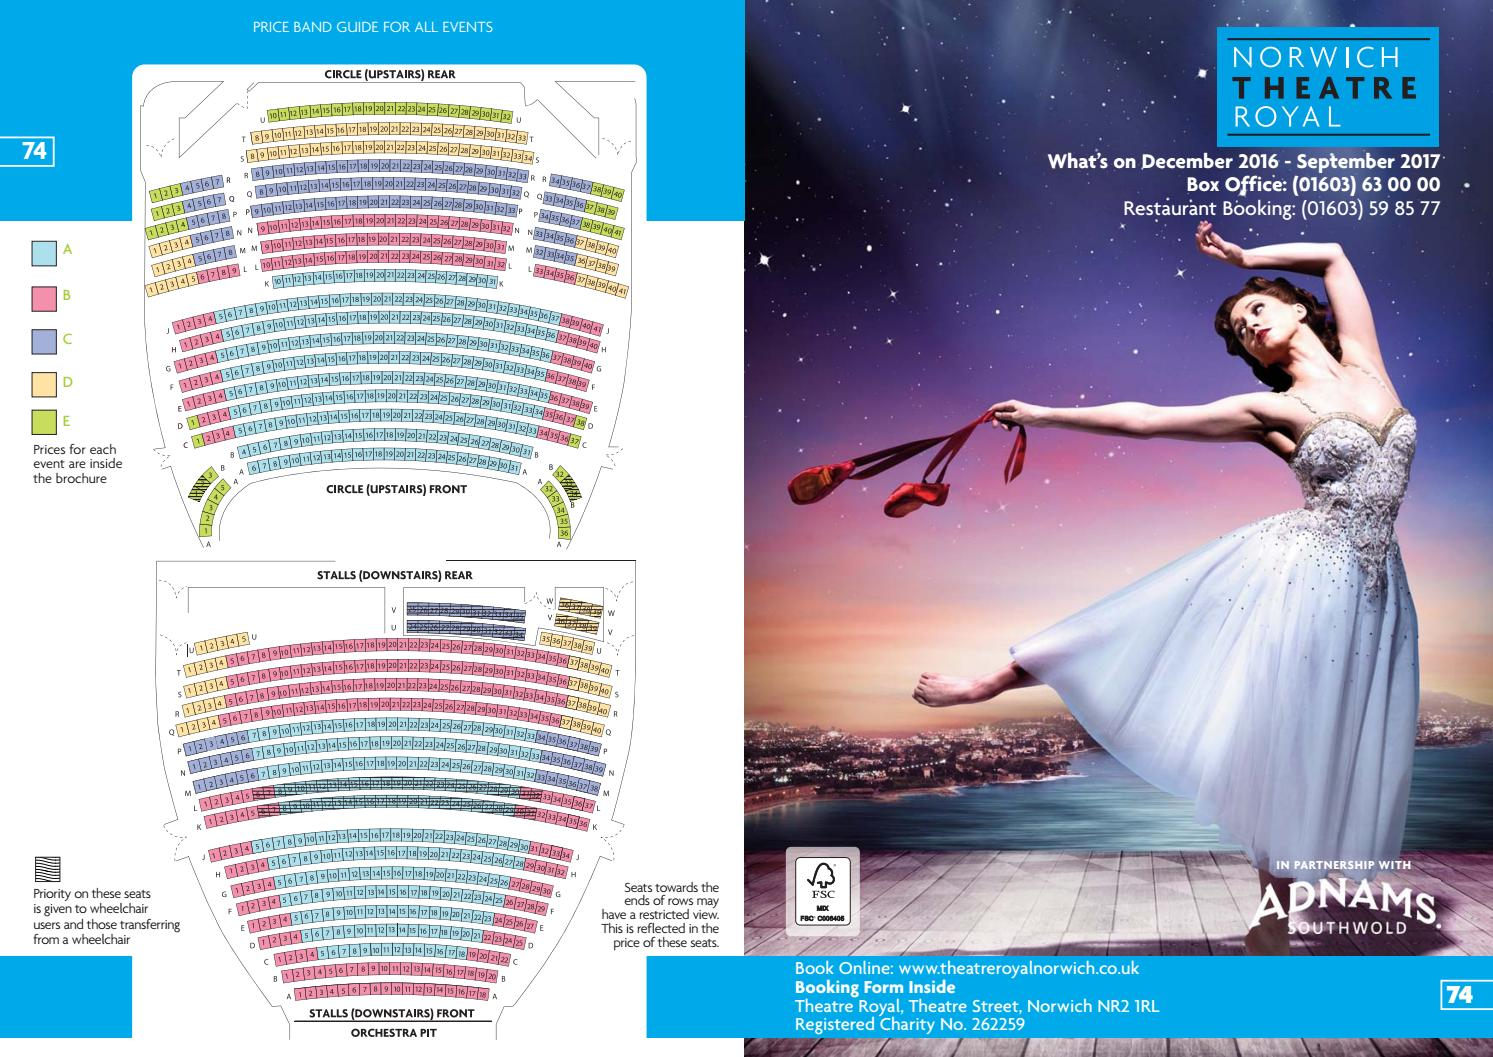 Brochure 74 December 2016 - September 2017 by Norwich Theatre Royal on